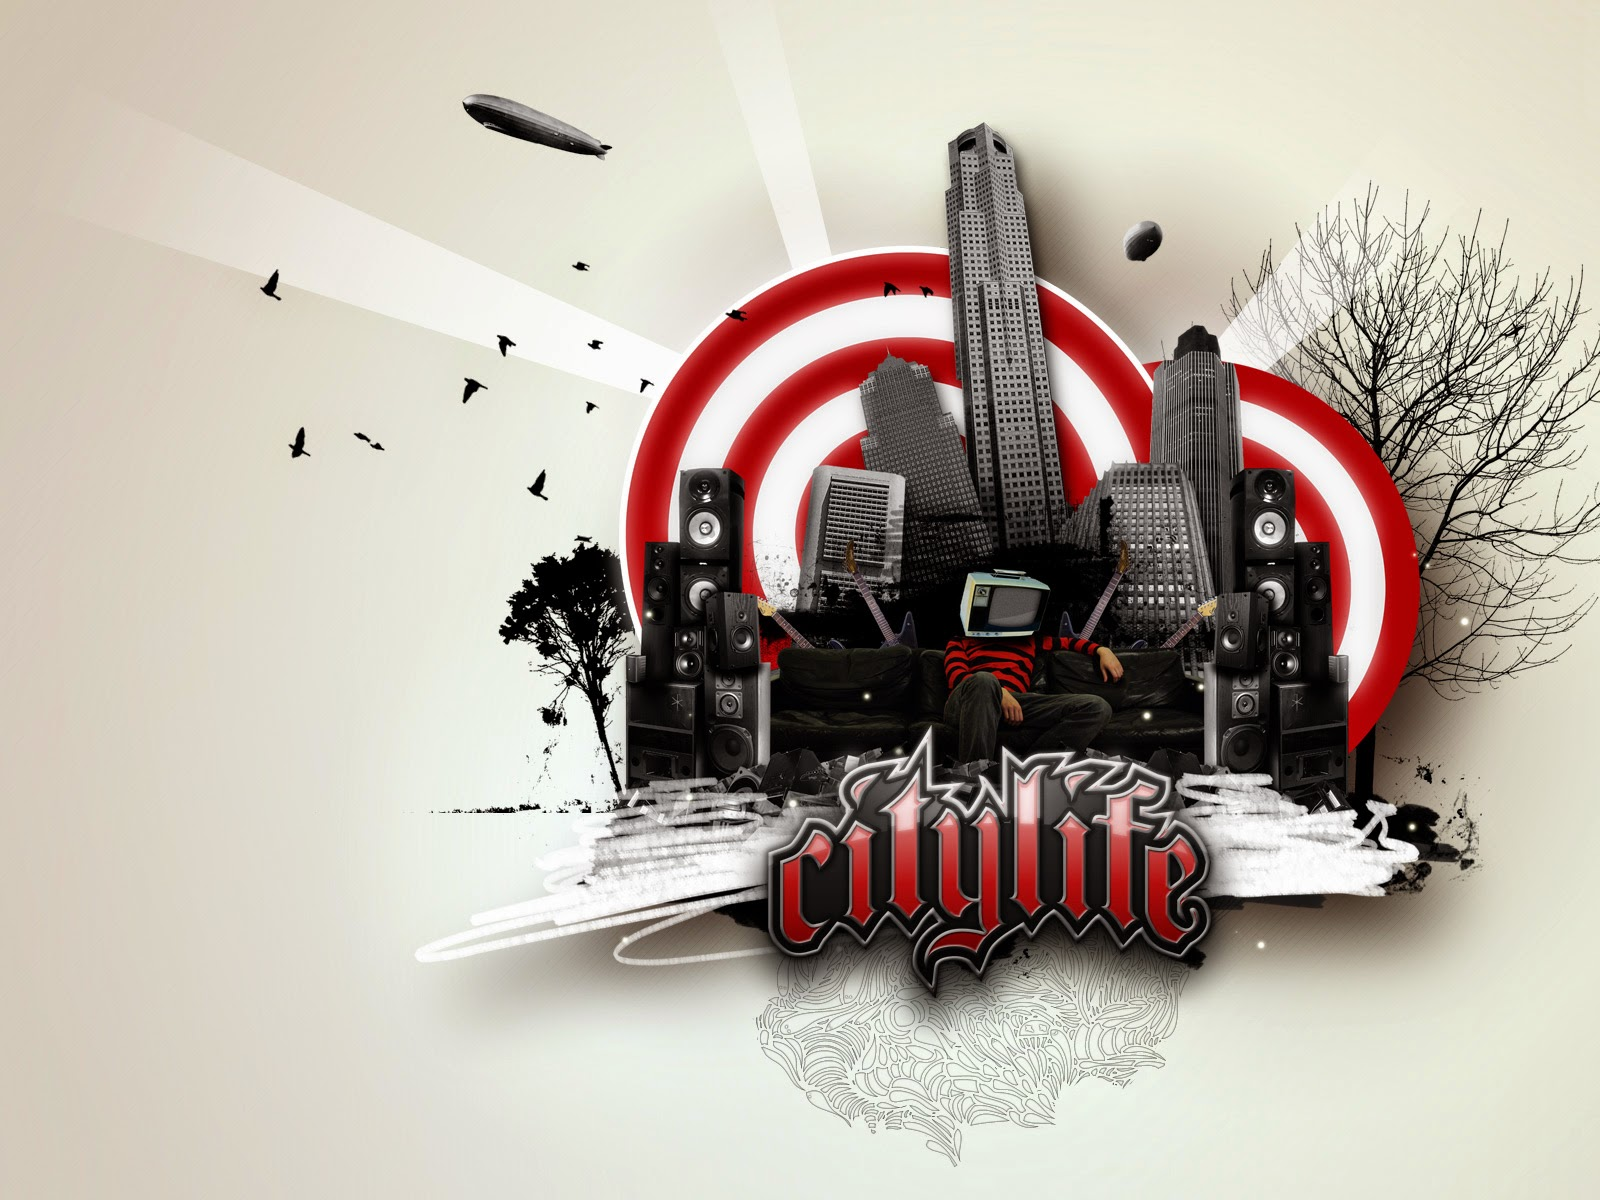 Abstract Citylife hd wallpaper